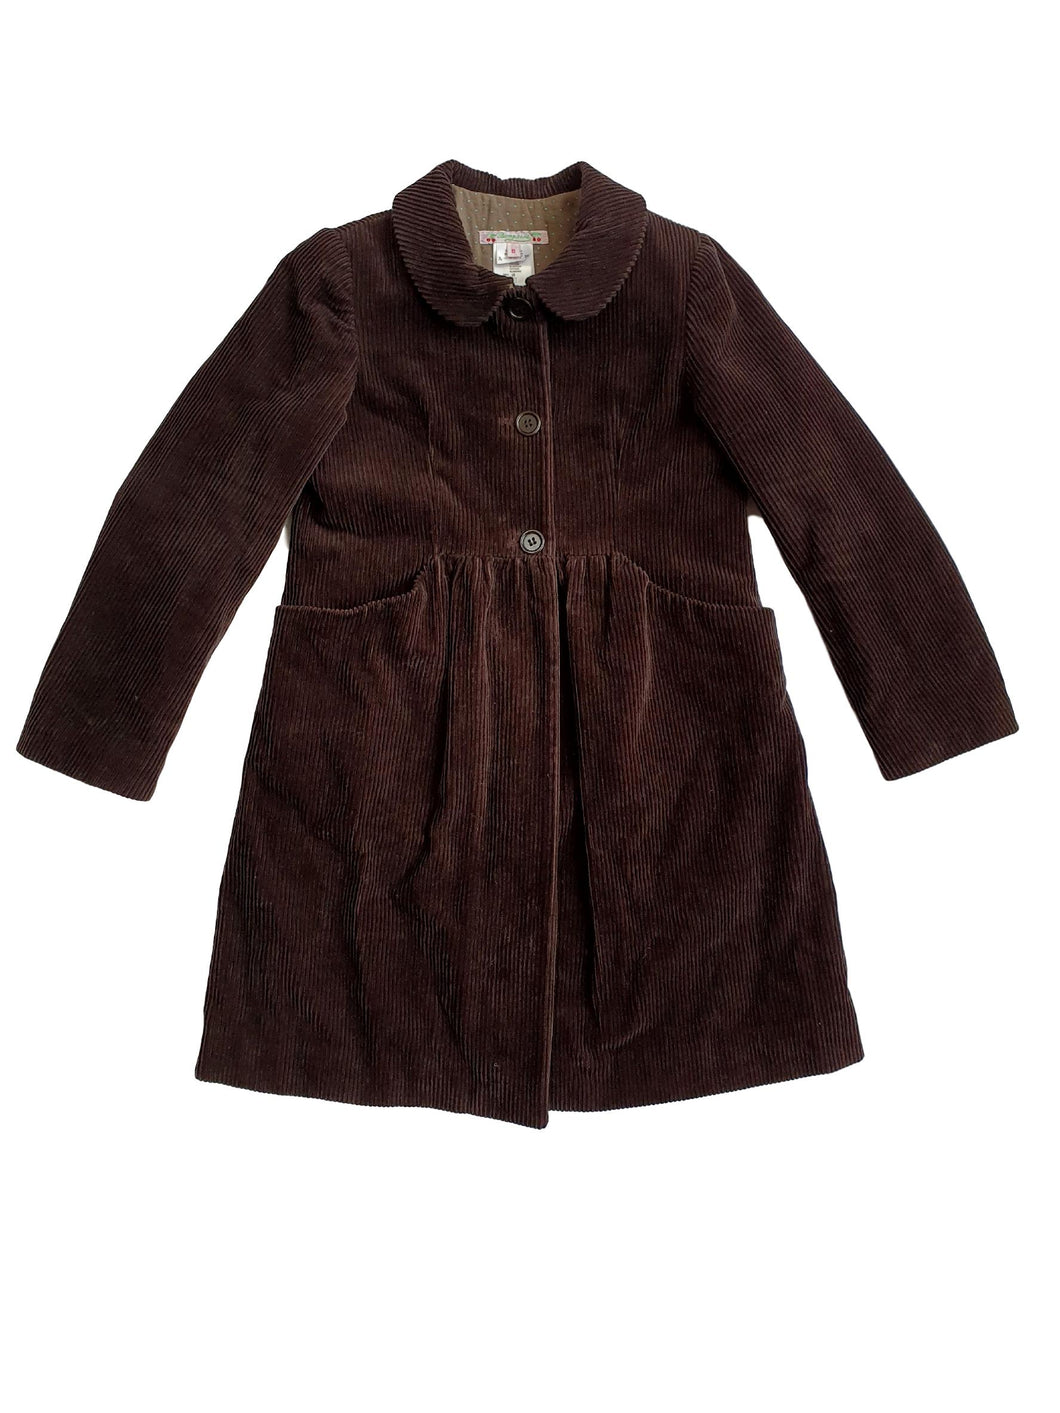 BONPOINT girl coat 8yo